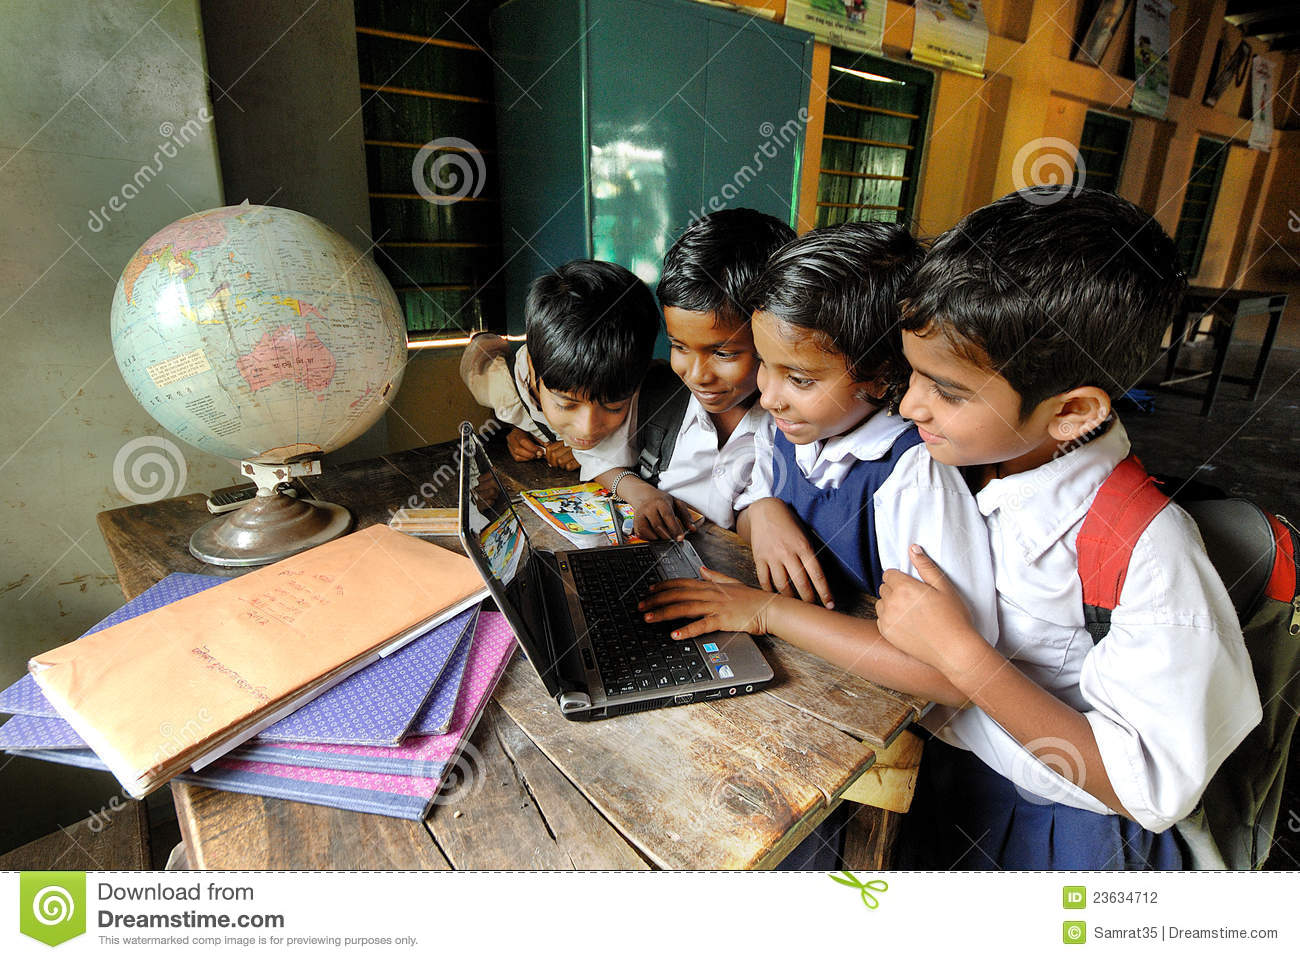 """study of education in rural india More children are going to school in india,  are big contributors to poor standards of education """"india will  enrollment in private schools in rural india."""